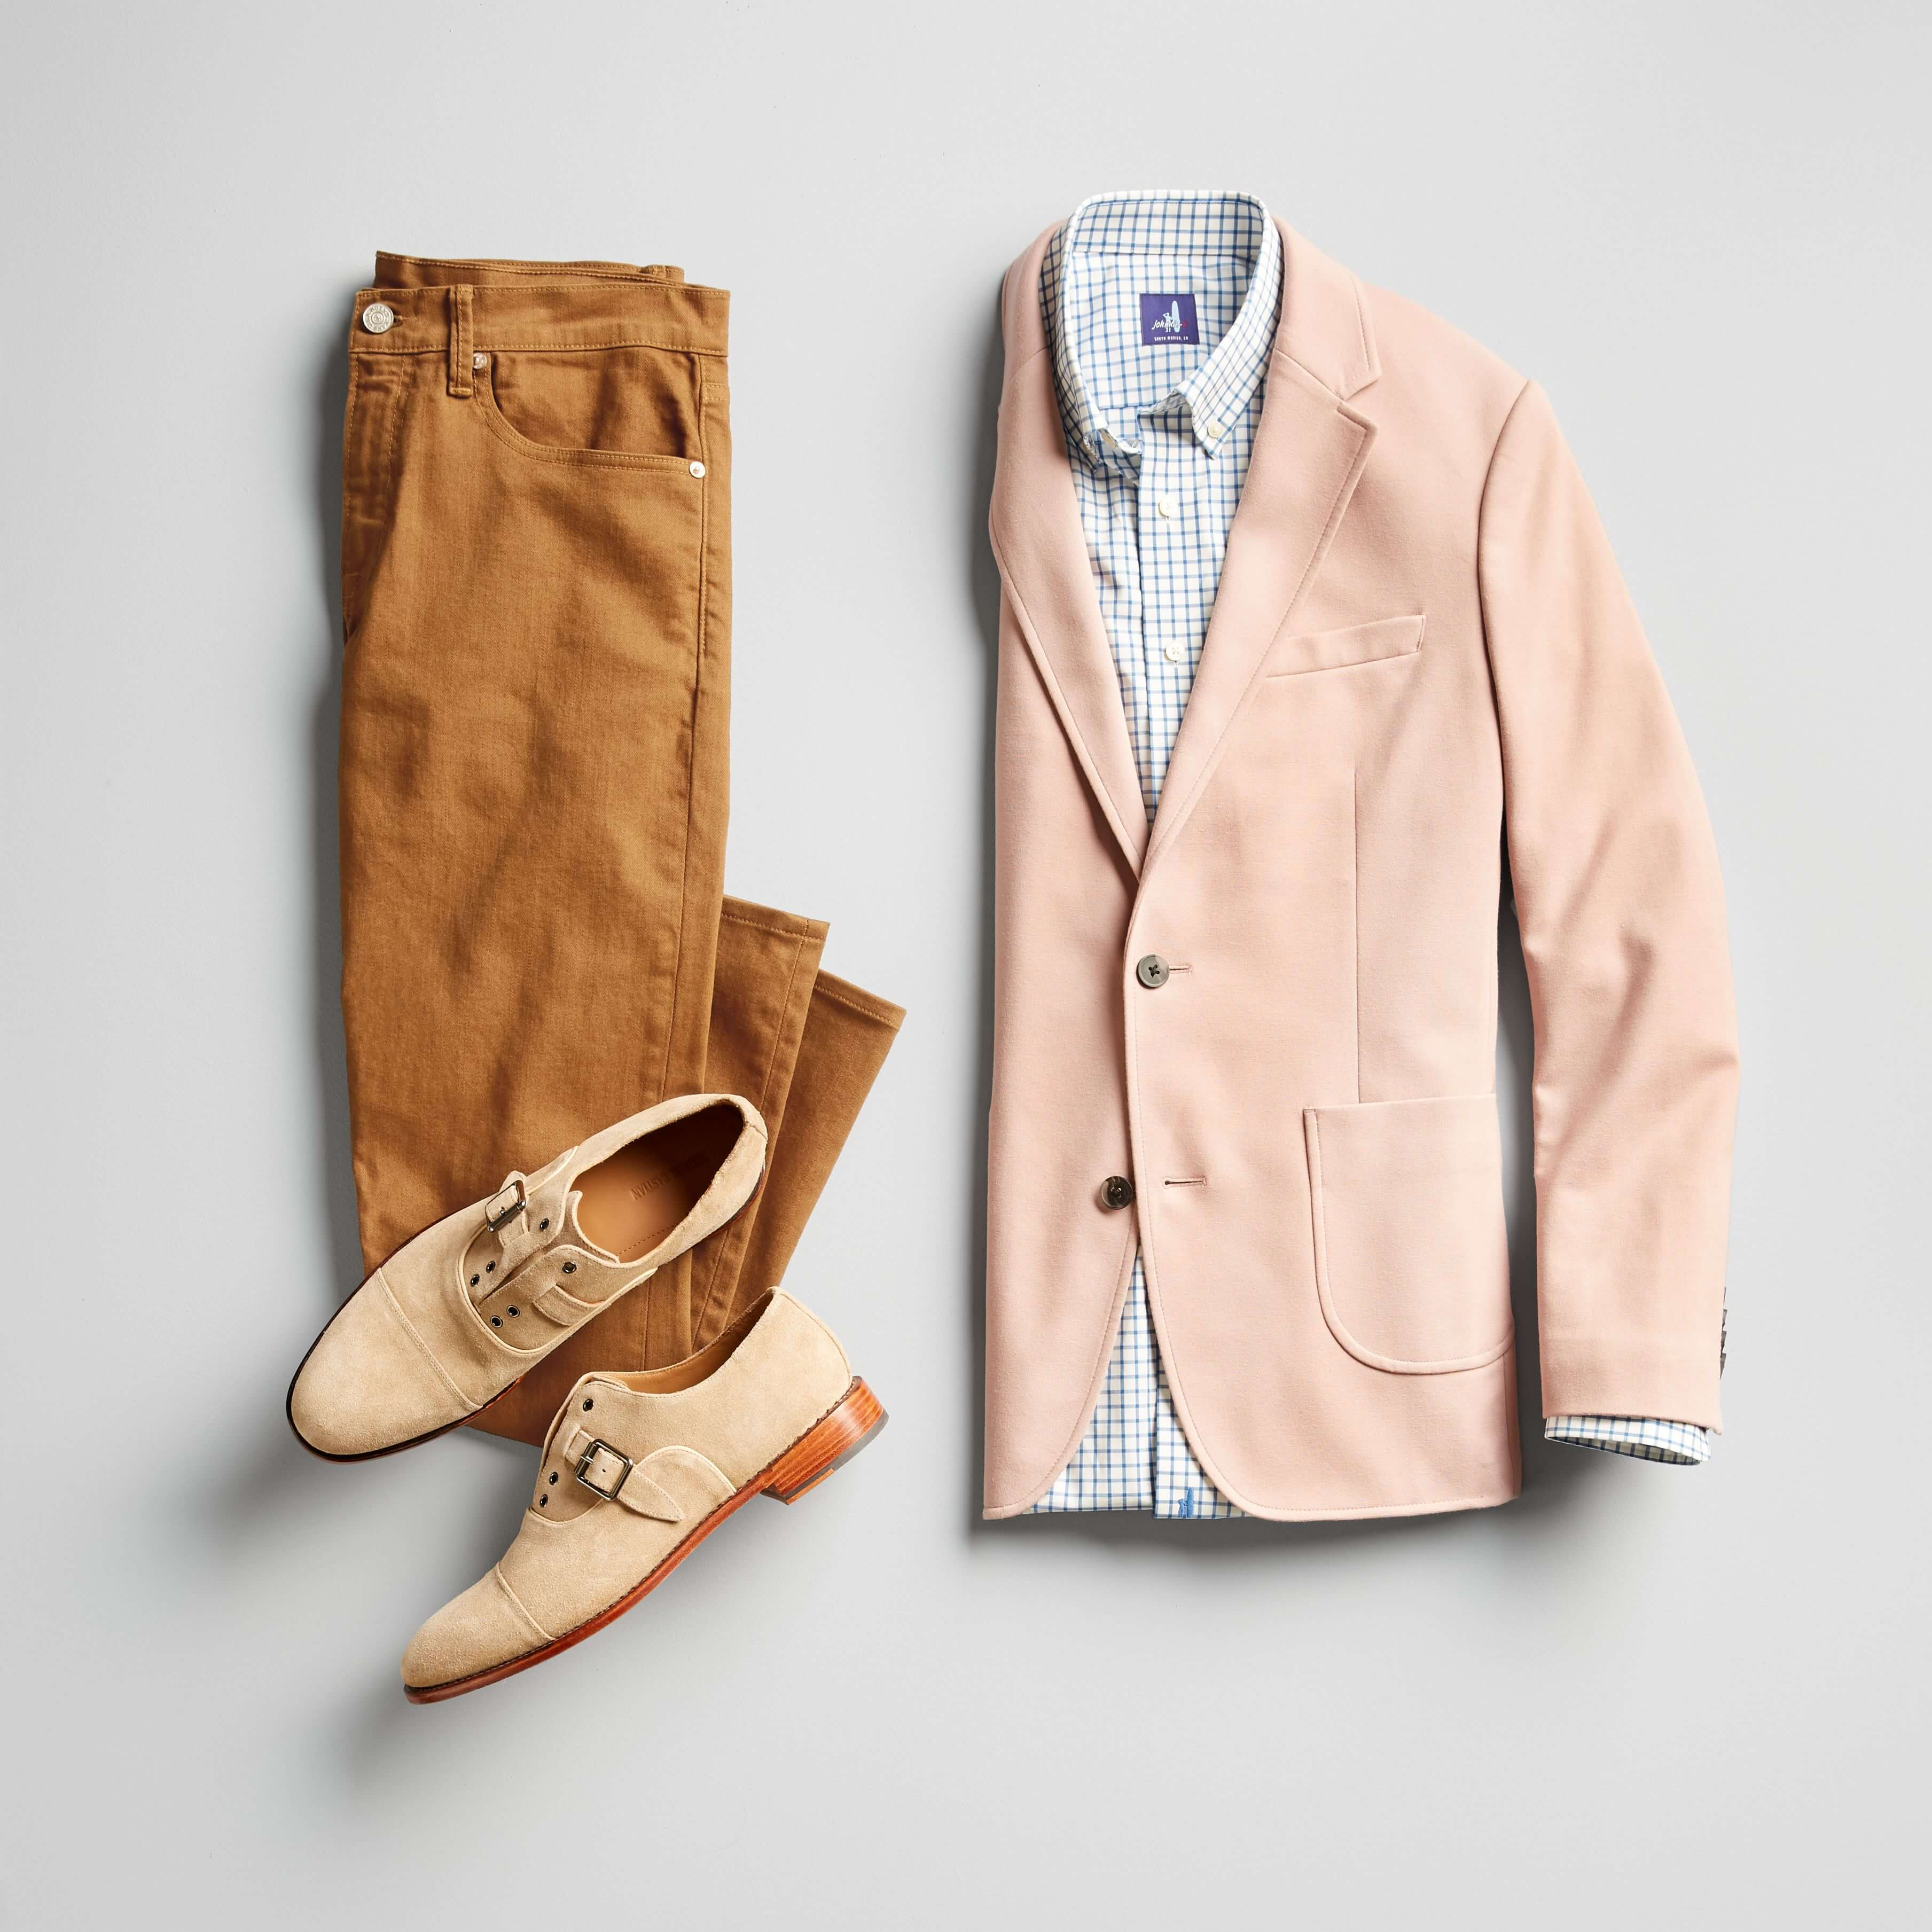 mens' stretch blazer and chino pants with oxfords